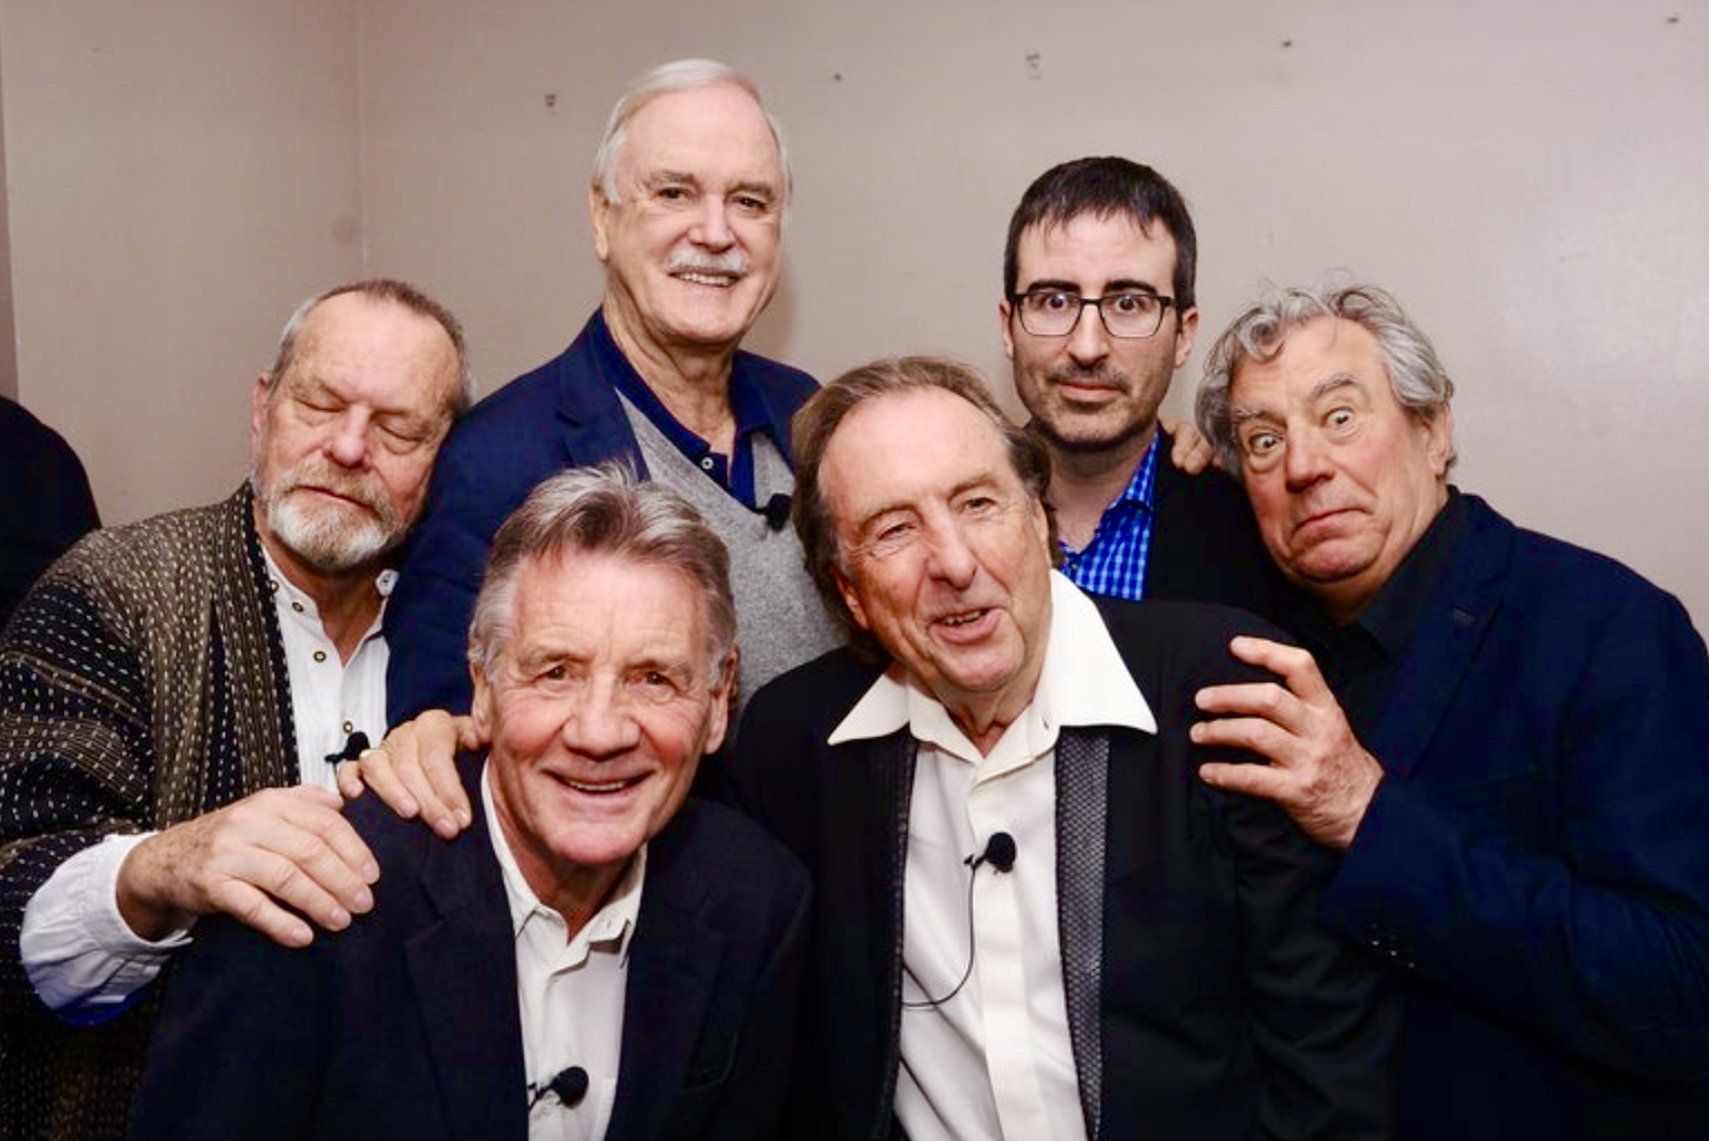 John Cleese, Terry Gilliam, Eric Idle, Terry Jones, Michael Palin, John Oliver, and Monty Python